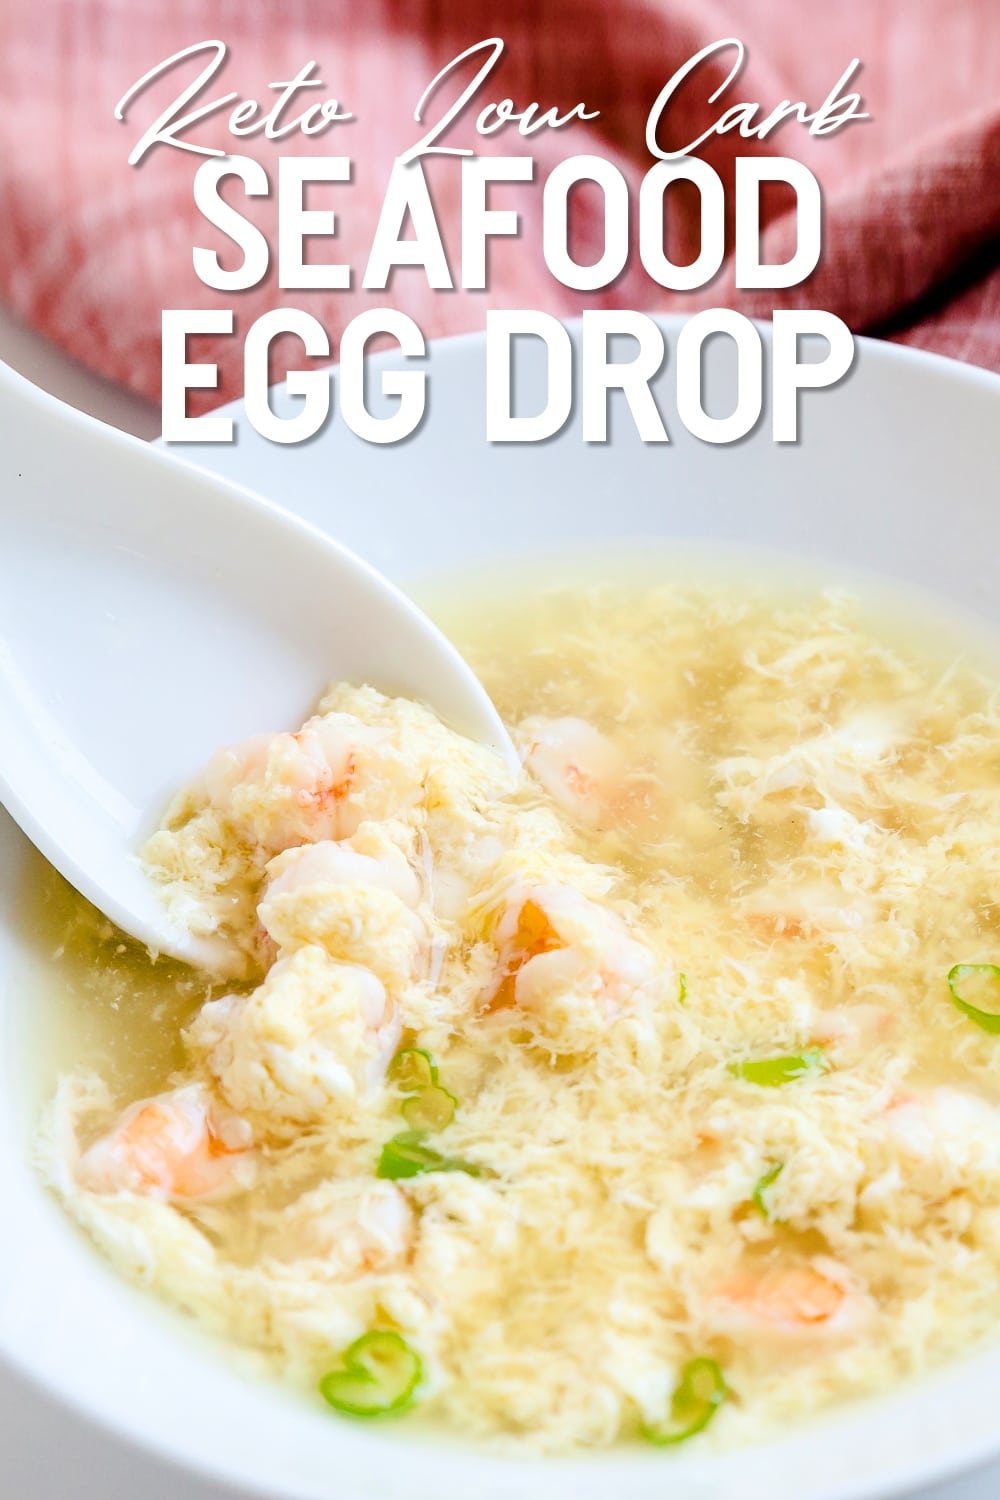 Seafood egg drop soup being scooped up with soup spoon